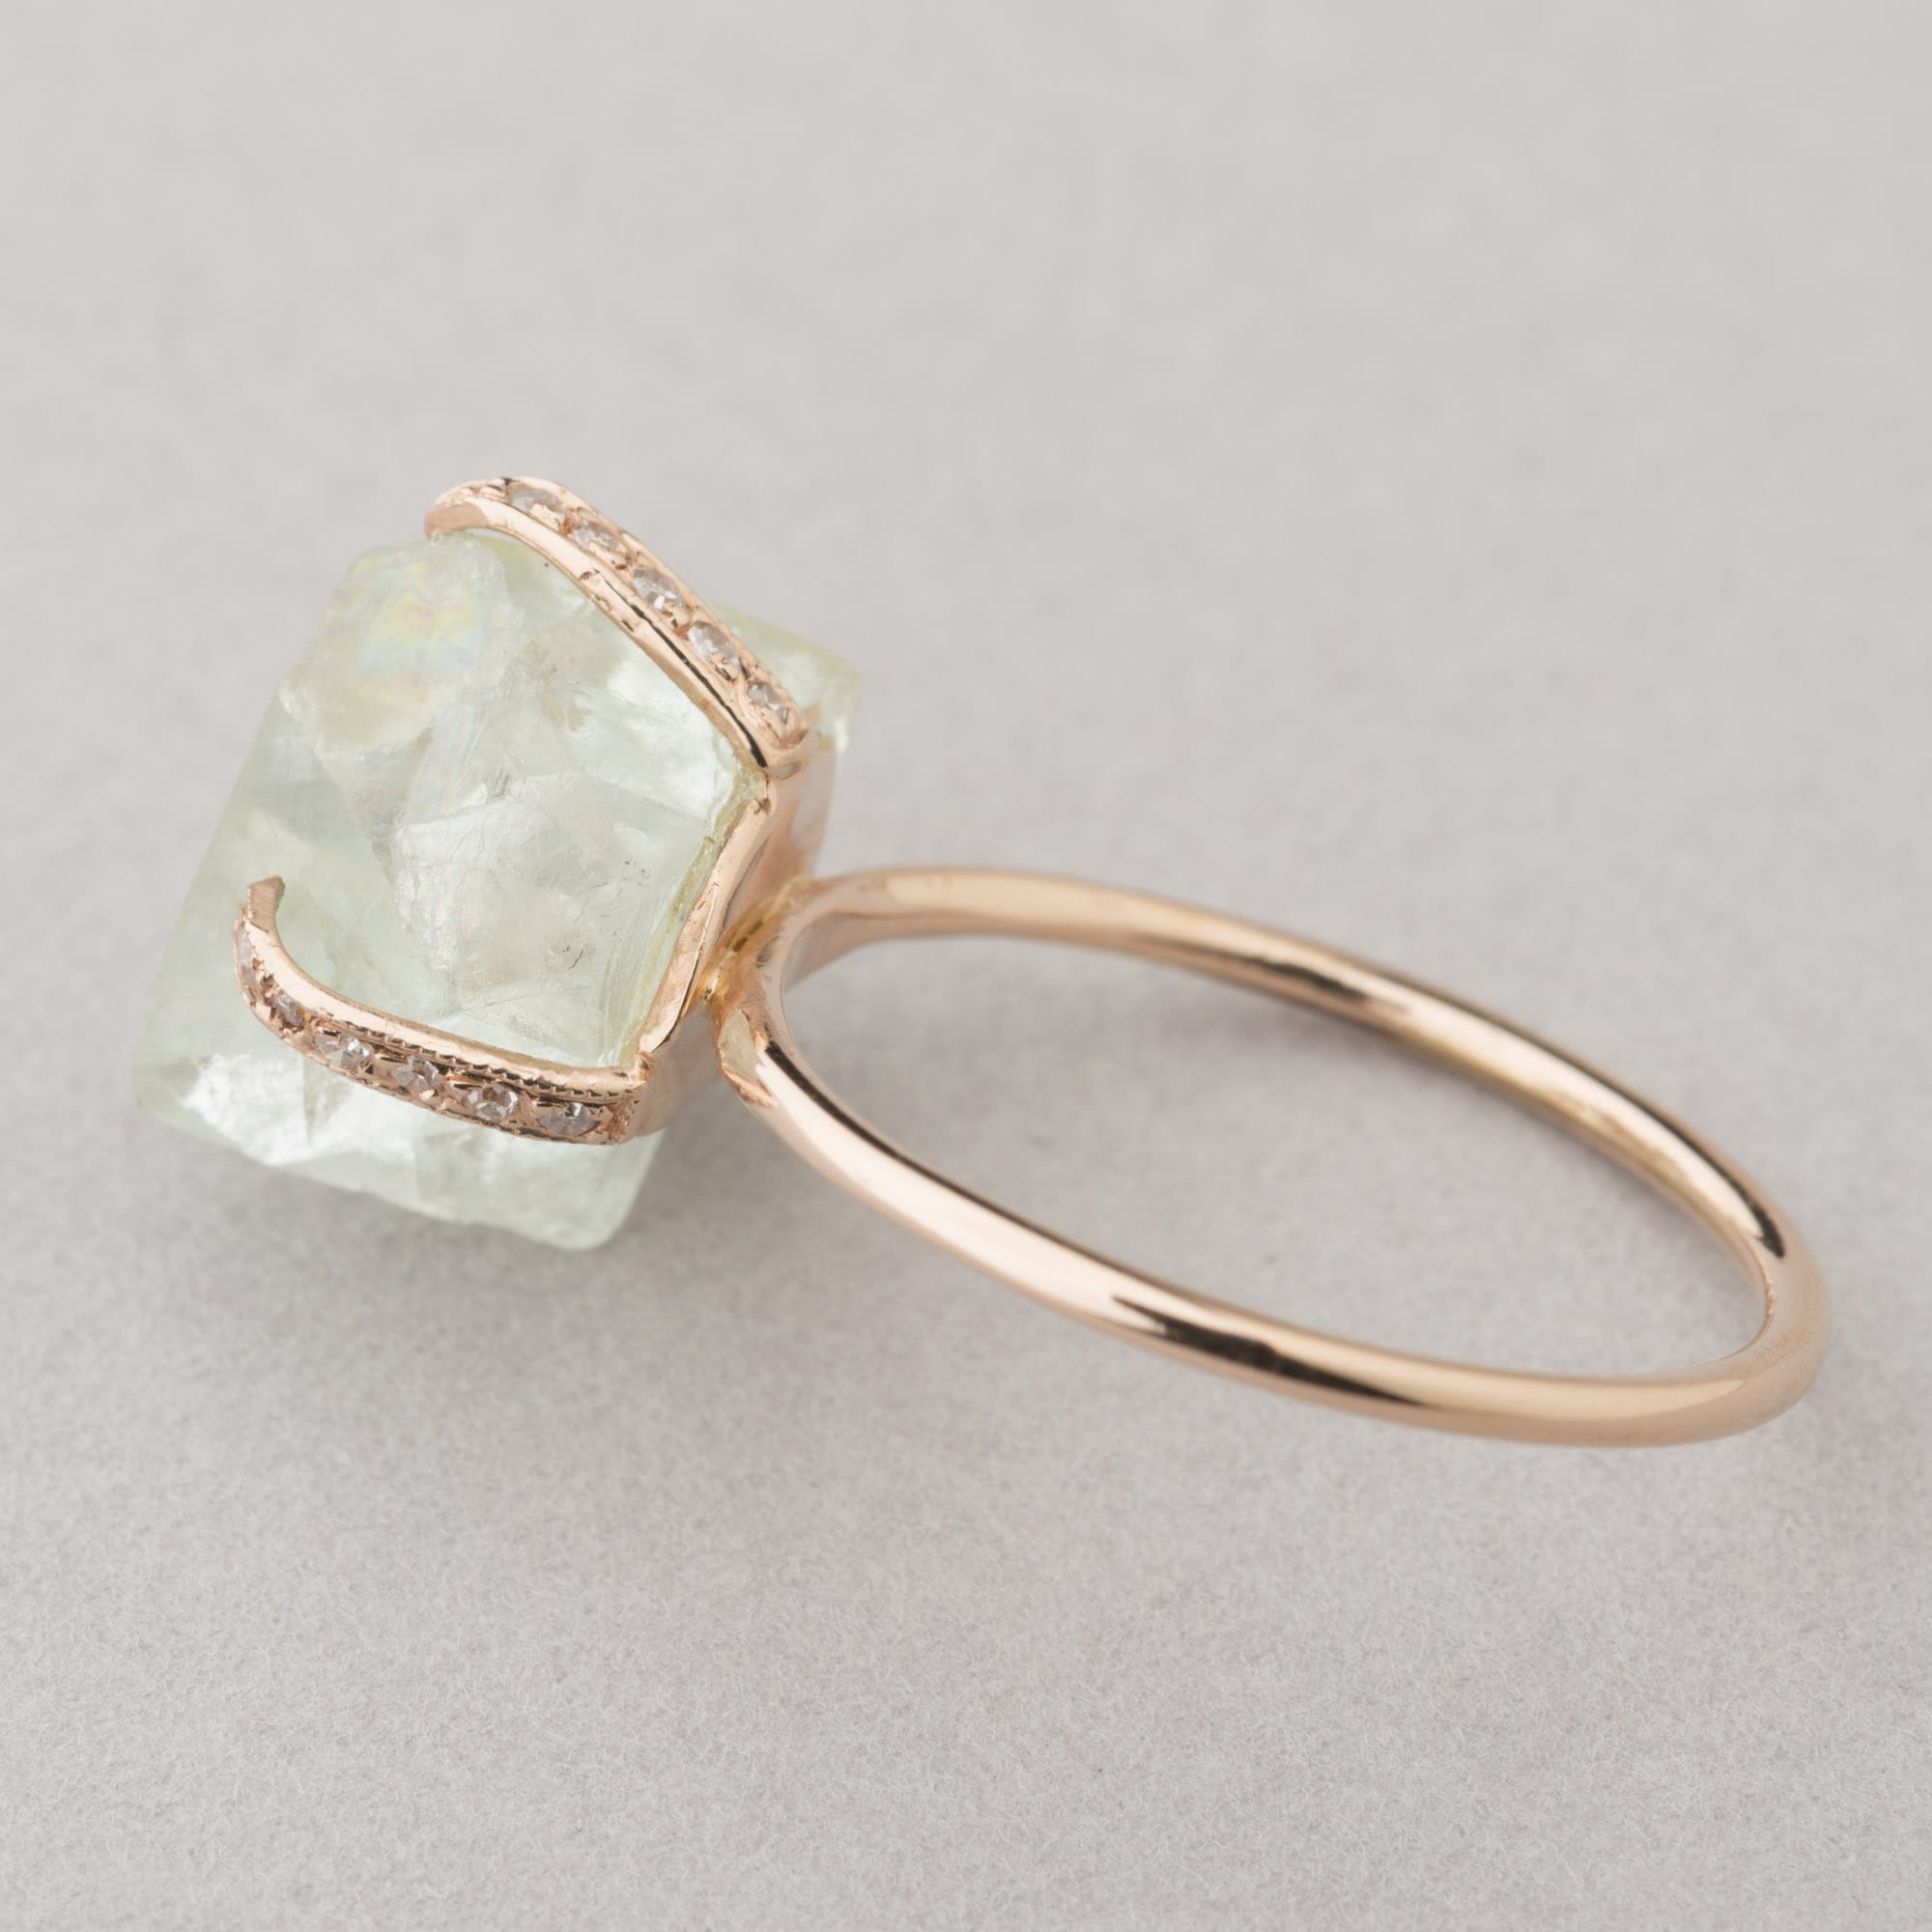 moldavite zircon engagement and dsc shop rings a jewelry fluorite art white through journey ring